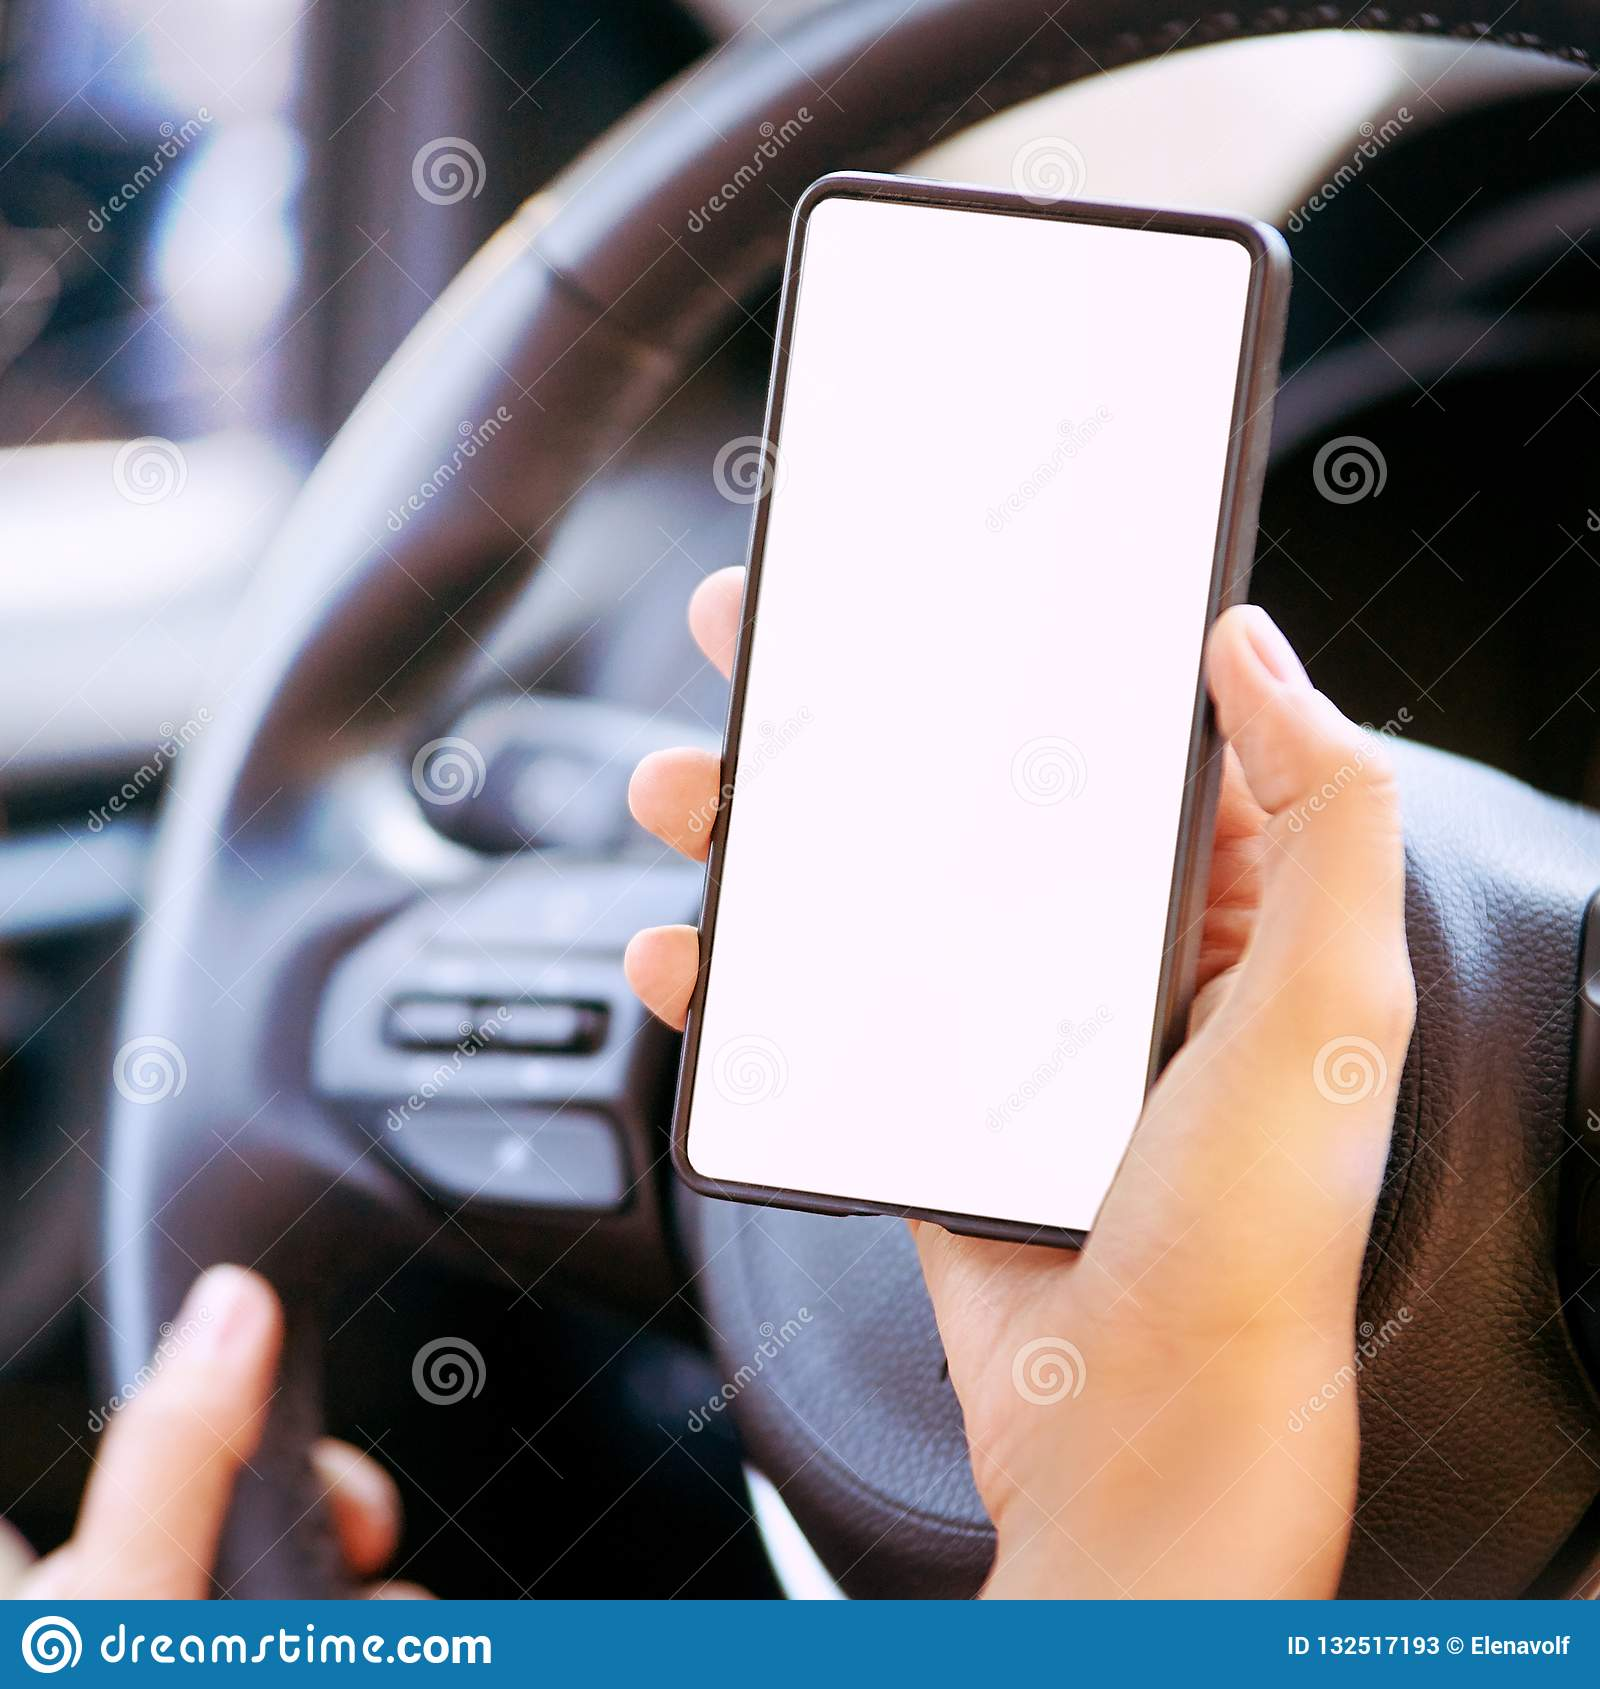 Phone In Car  Mockup Screen App  Travel Map Stock Image